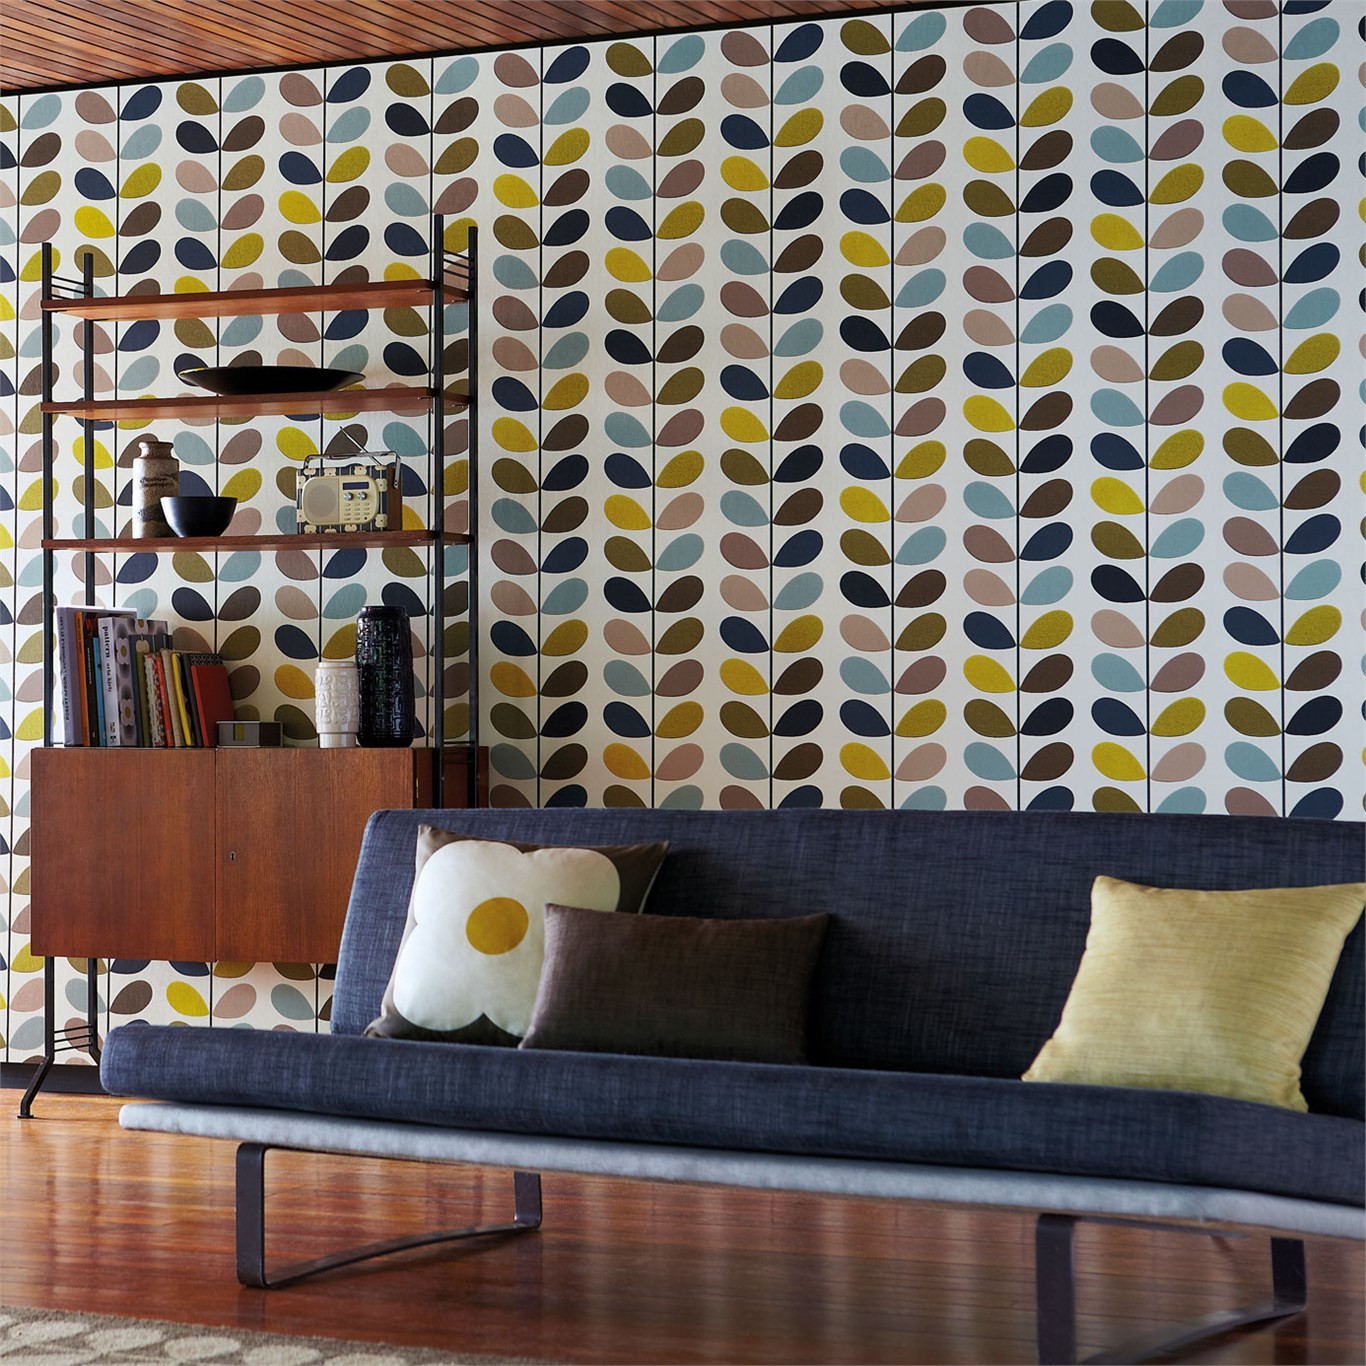 ora-kiely-multi-stem-harlequin-malcolm-fabrics Multi-Stem by Orla Kiely | Harlequin | Distributed in NZ by Malcolm Fabrics